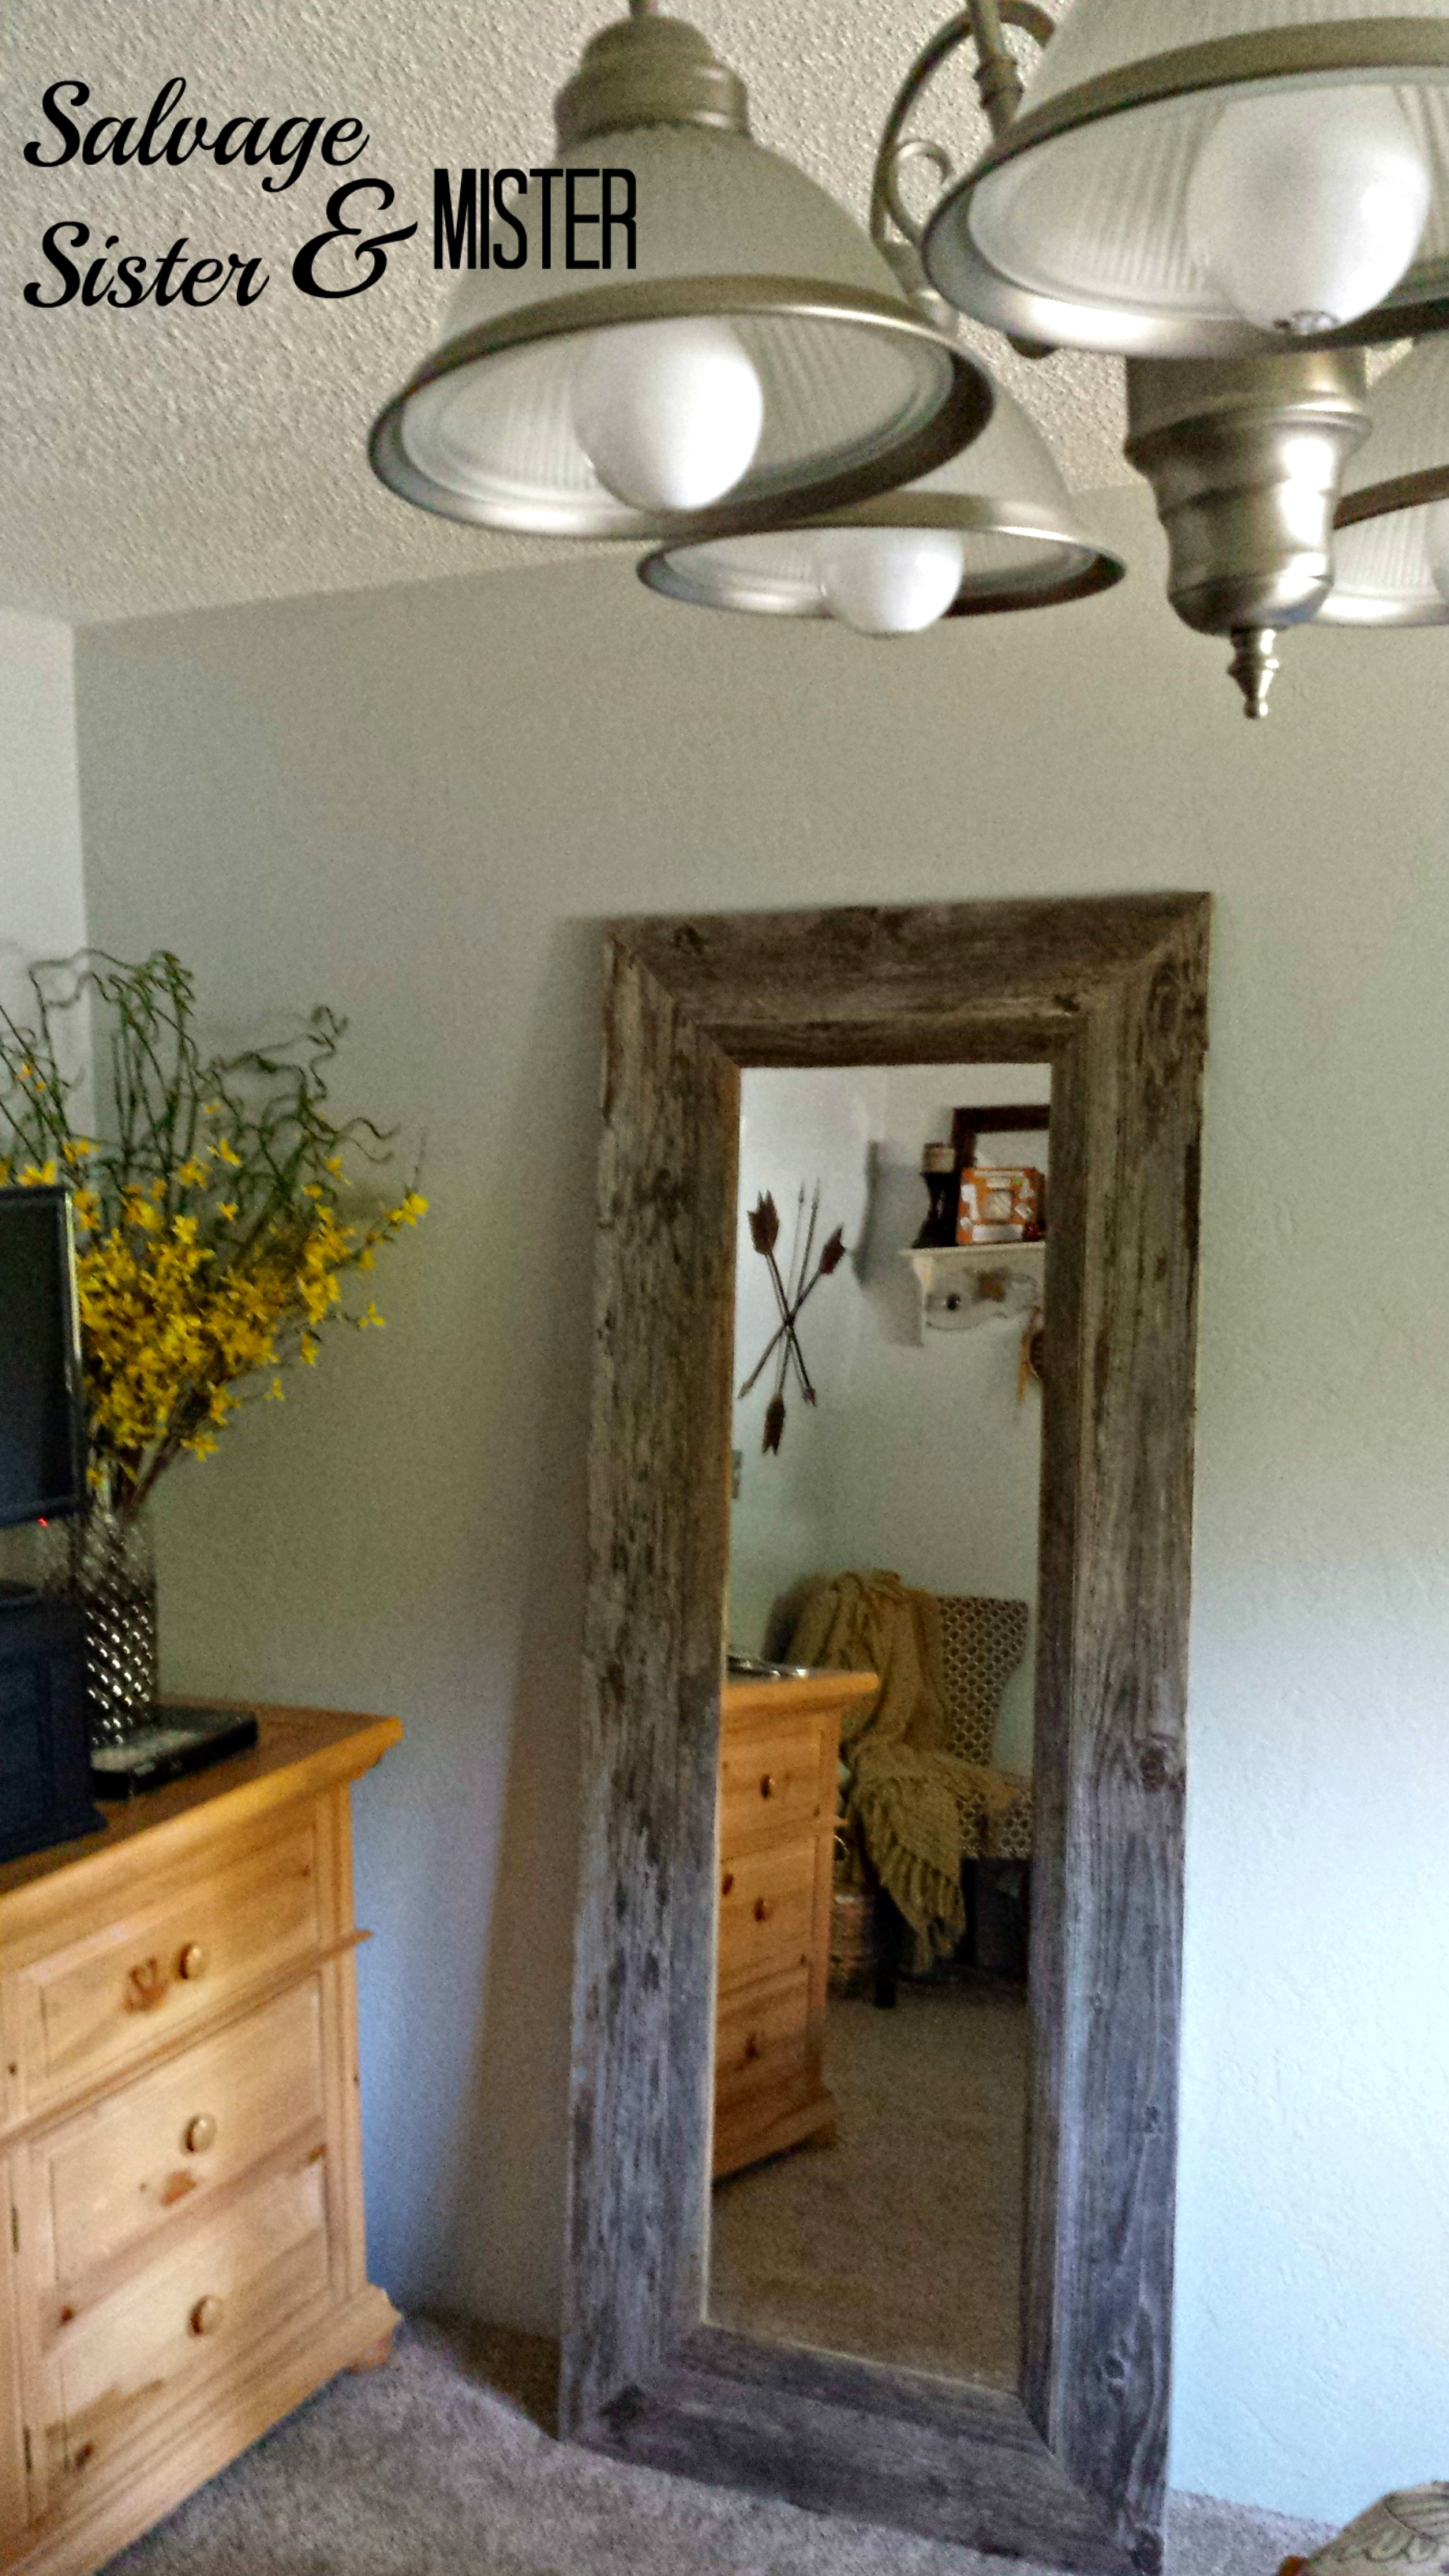 Pottery barn inspired mirror made from a goodwill mirror. Frame made from salvaged wood. DIY project under $50 instead of a $500 mirror. Full tutorial.